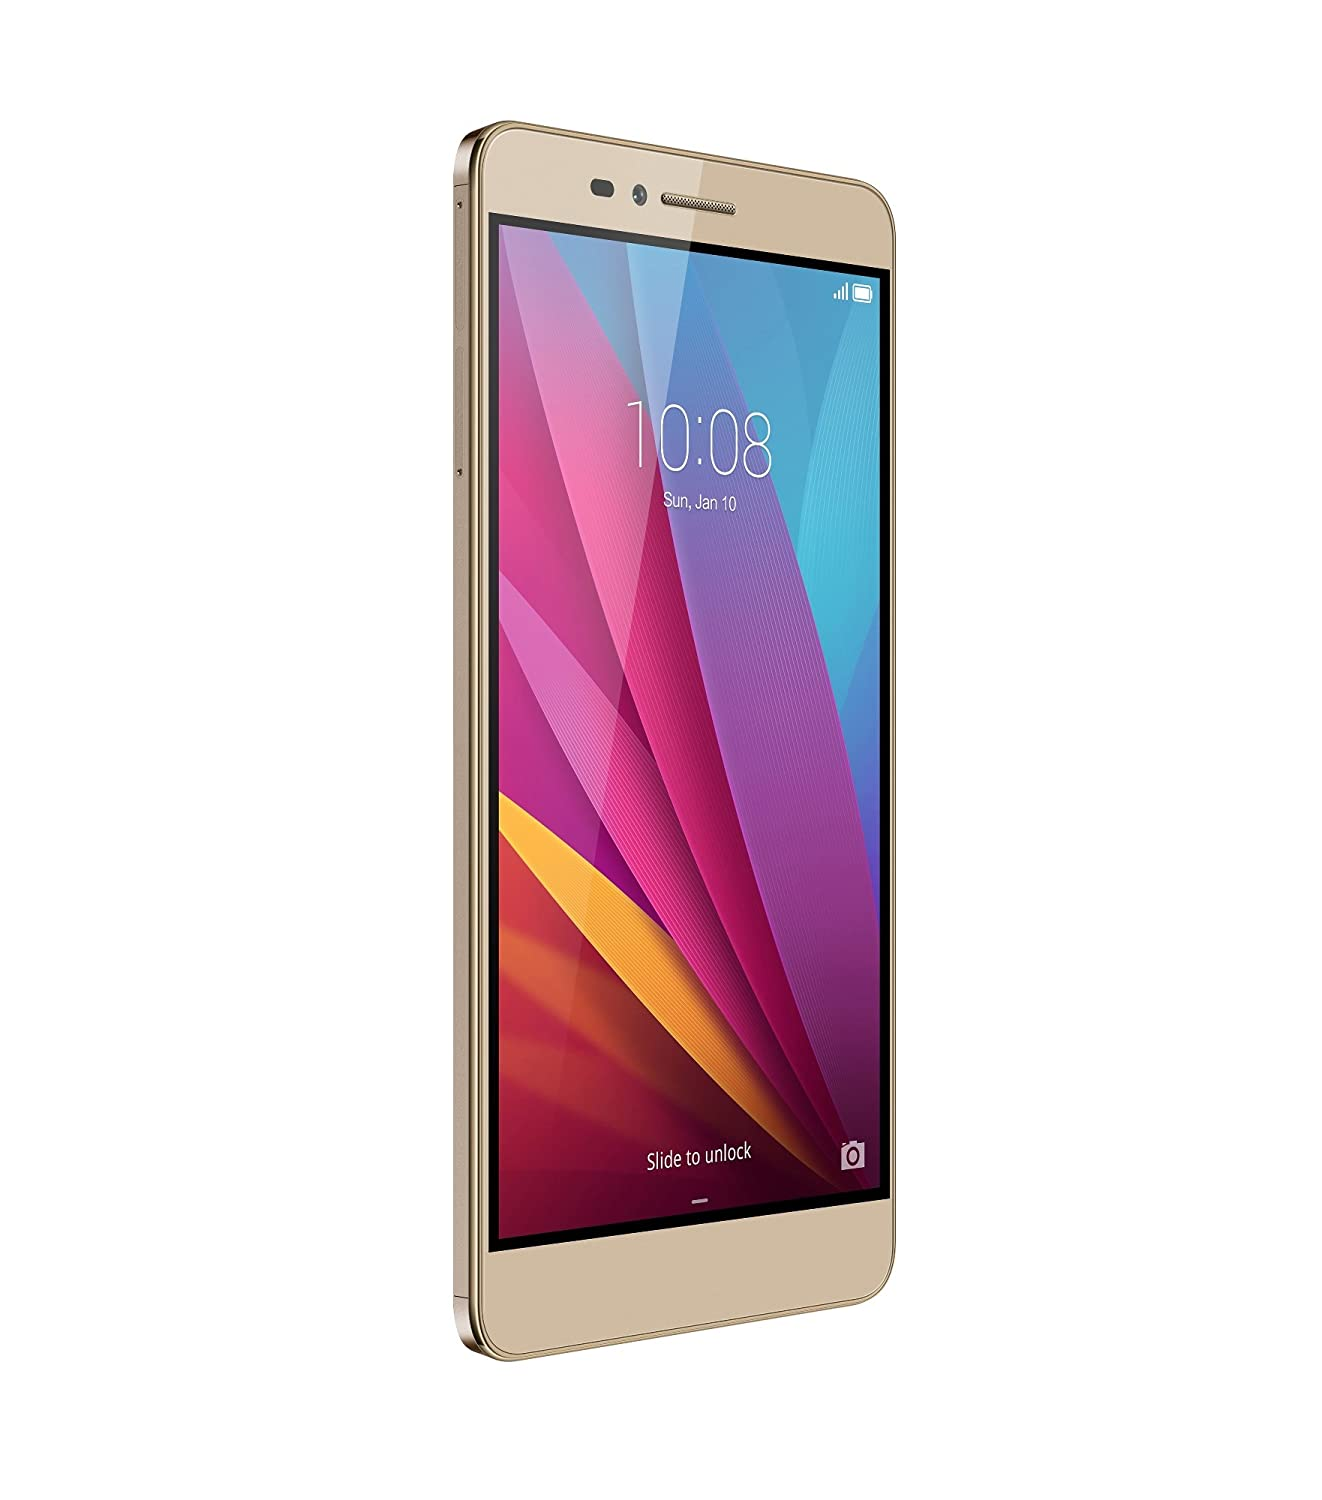 Amazon honor 5x unlocked smartphone 16gb sunset gold us amazon honor 5x unlocked smartphone 16gb sunset gold us warranty cell phones accessories biocorpaavc Image collections